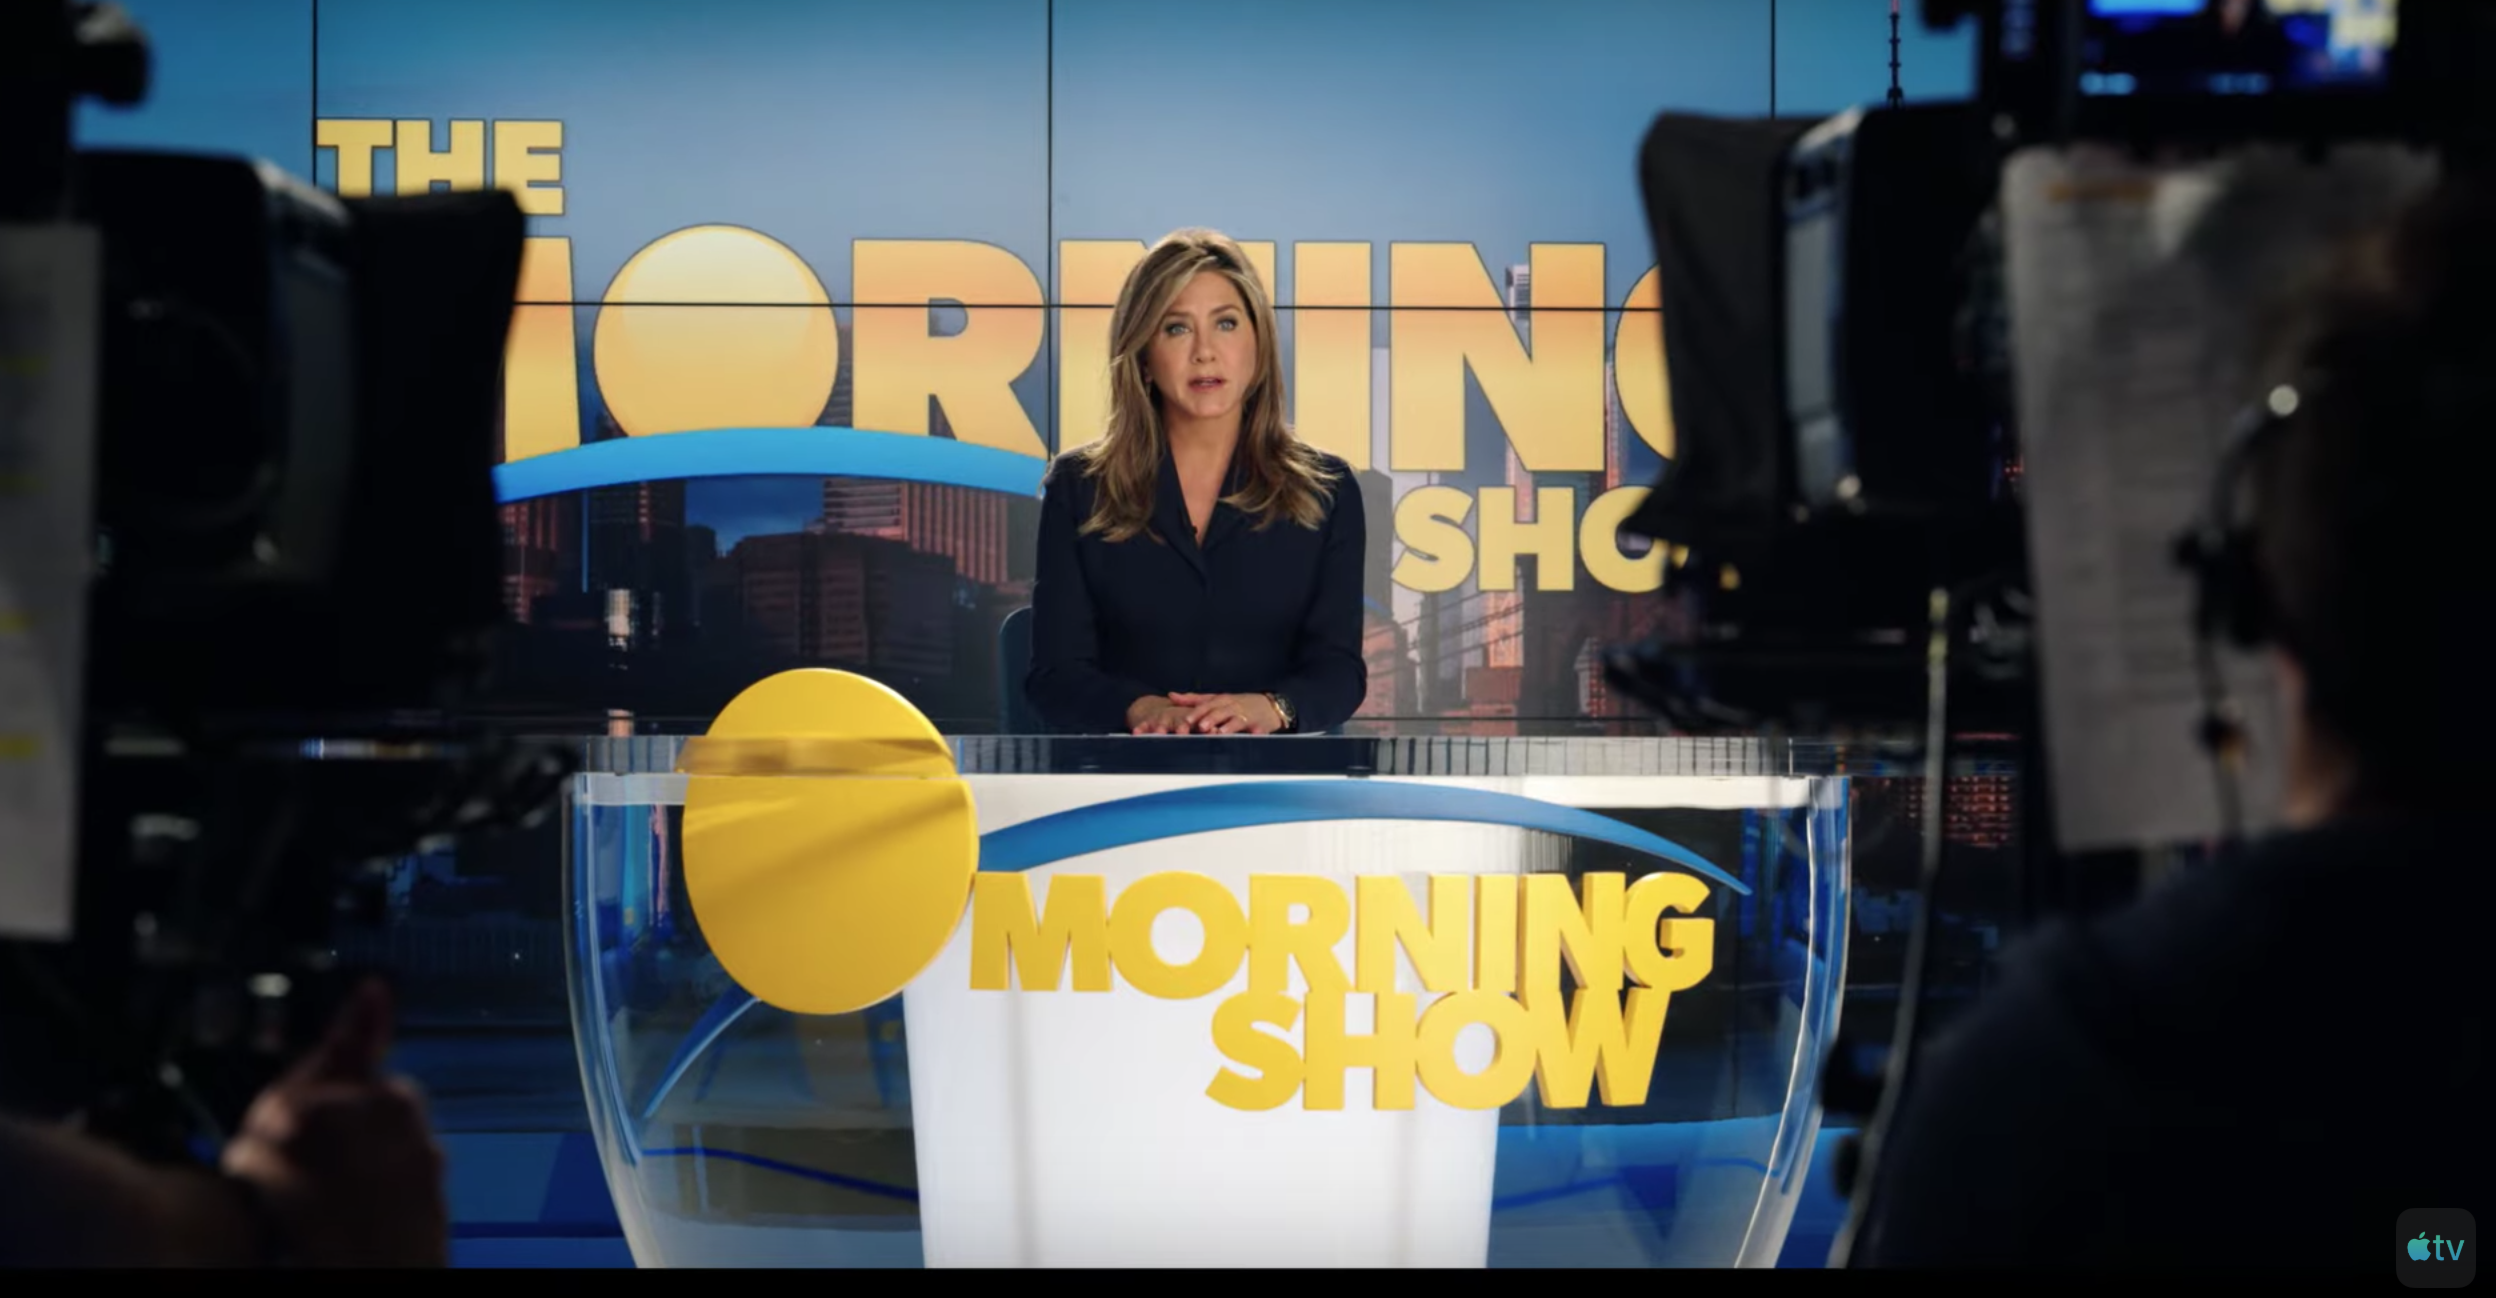 Apple's The Morning Show trailer is part of a prominent TV trend